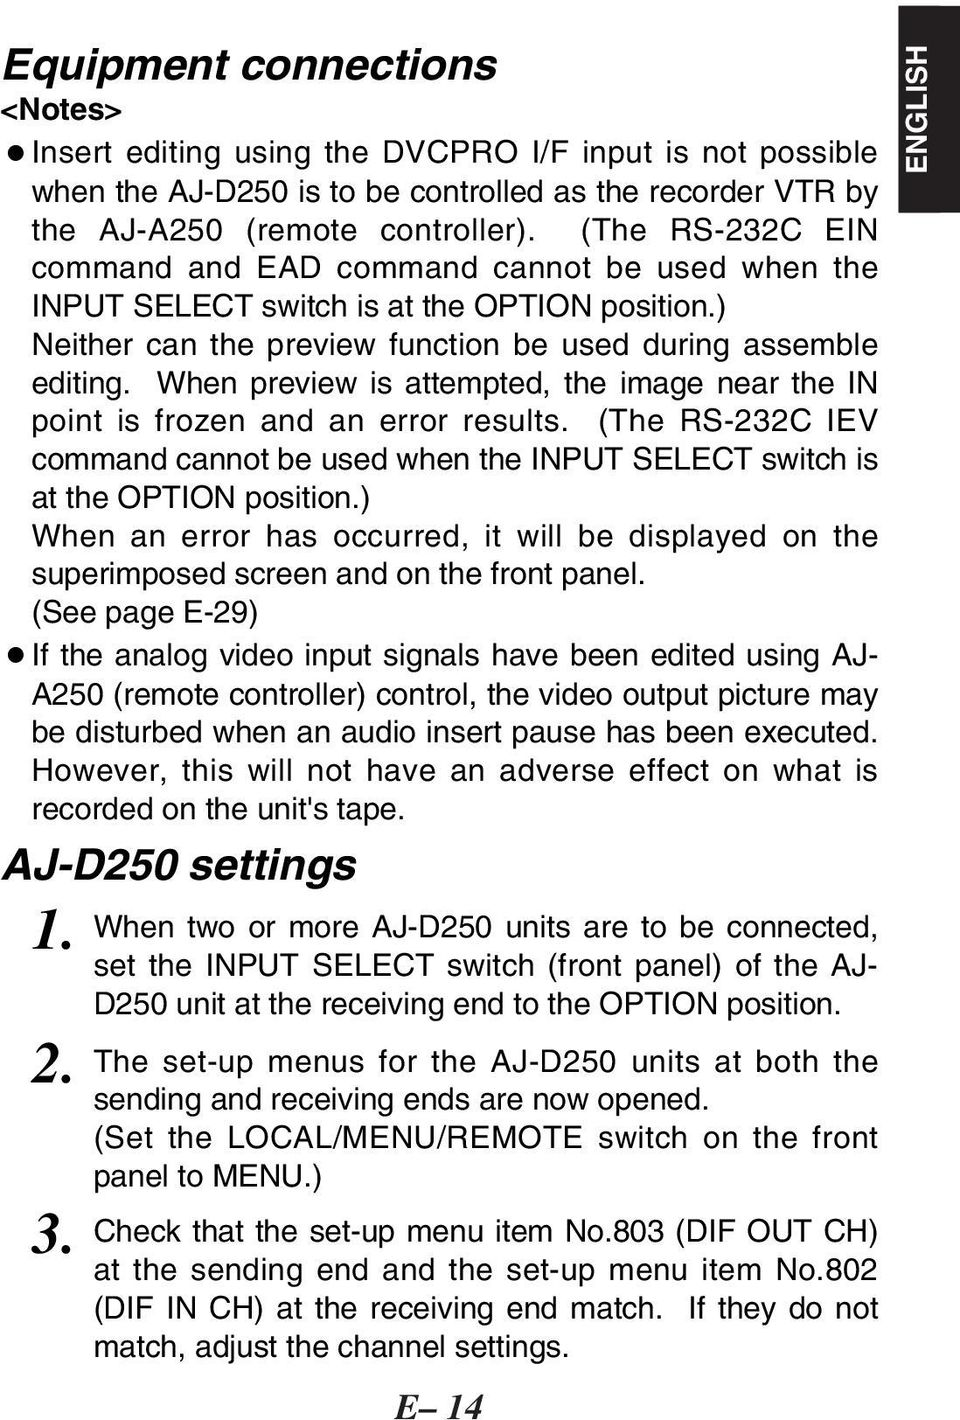 When preview is attempted, the image near the IN point is frozen and an error results. (The RS-232C IEV command cannot be used when the INPUT SELECT switch is at the OPTION position.